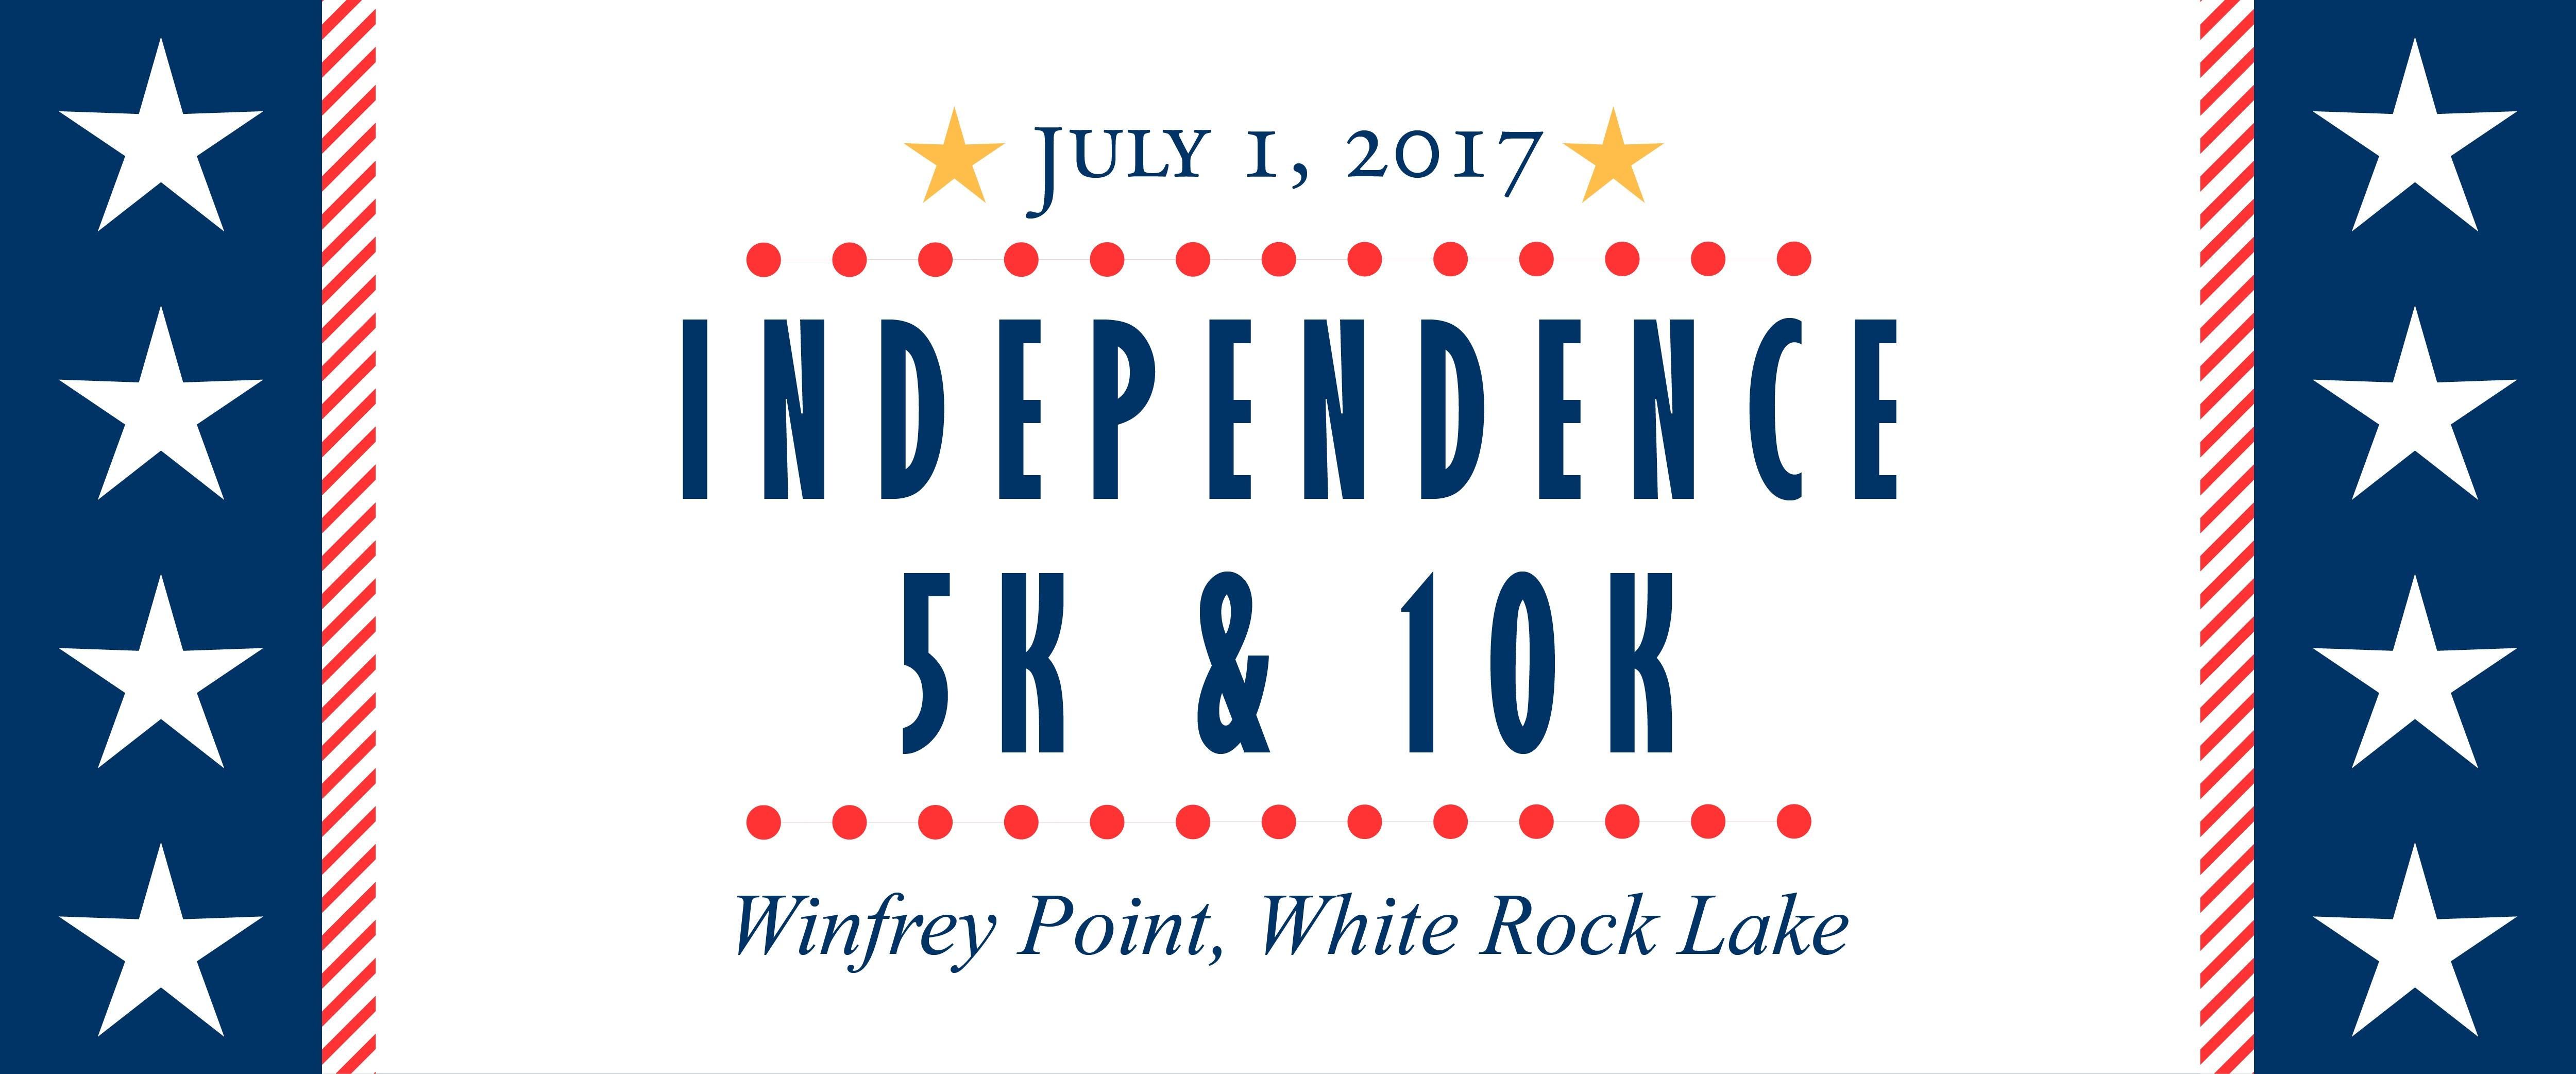 2017 DRC Independence 5K and 10K